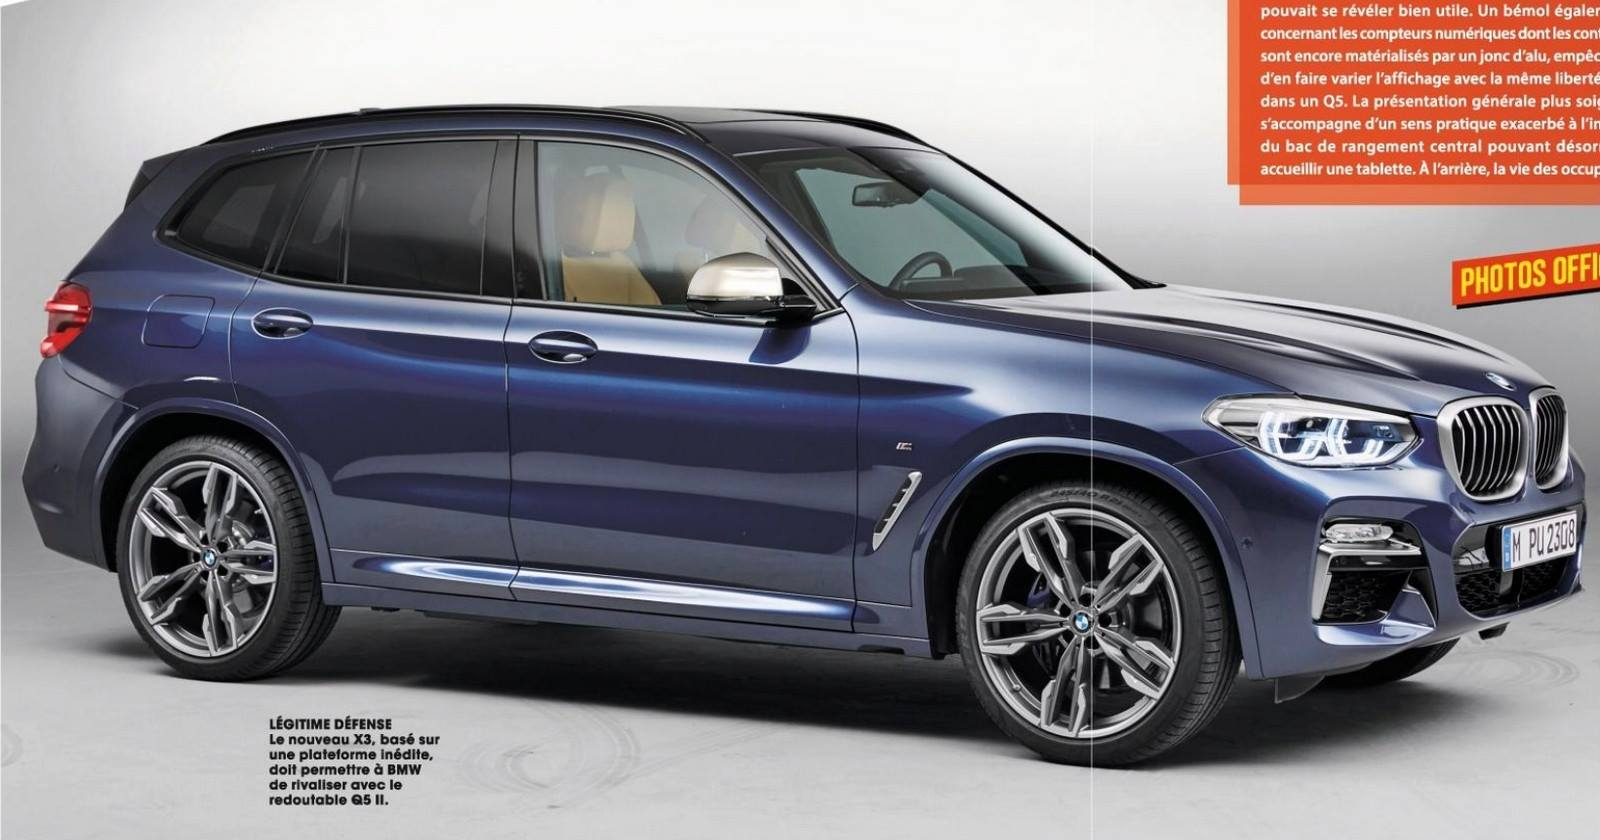 2018 bmw x3.  2018 2018 mmw x3 leaked photos  intended bmw x3